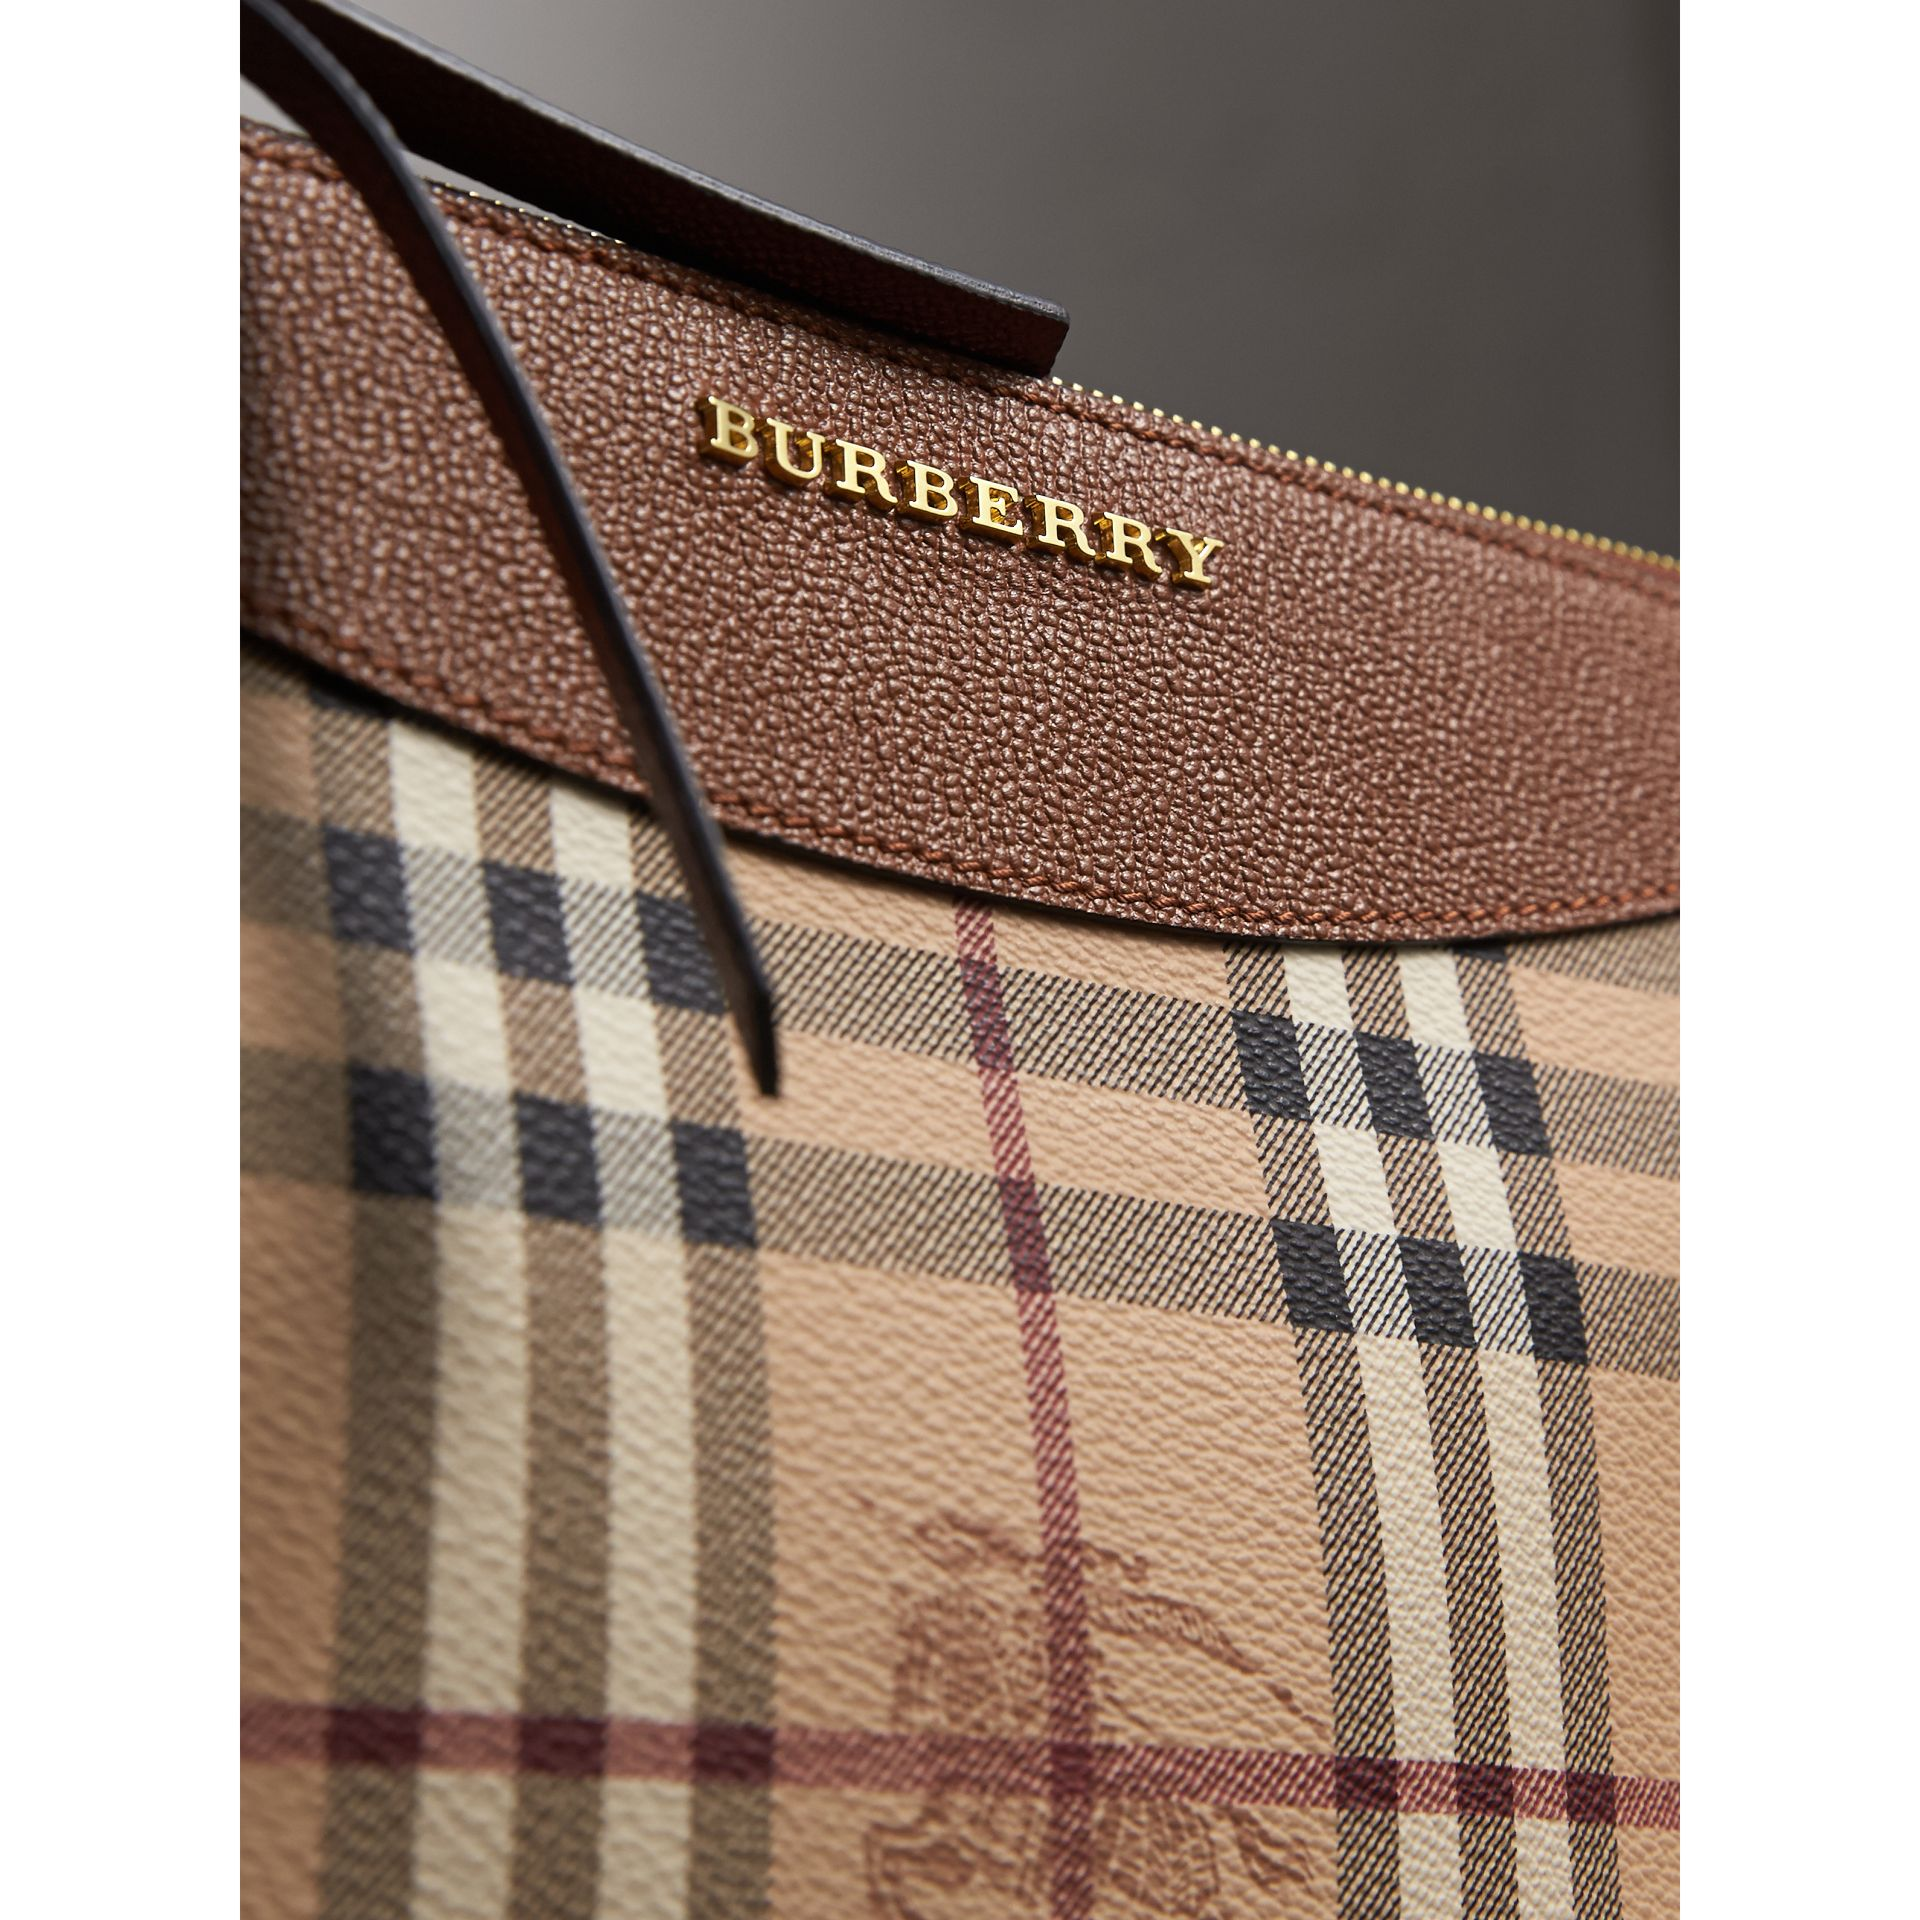 Haymarket Check and Two-tone Leather Clutch Bag in Bright Toffee/ Multicolour - Women | Burberry Australia - gallery image 2